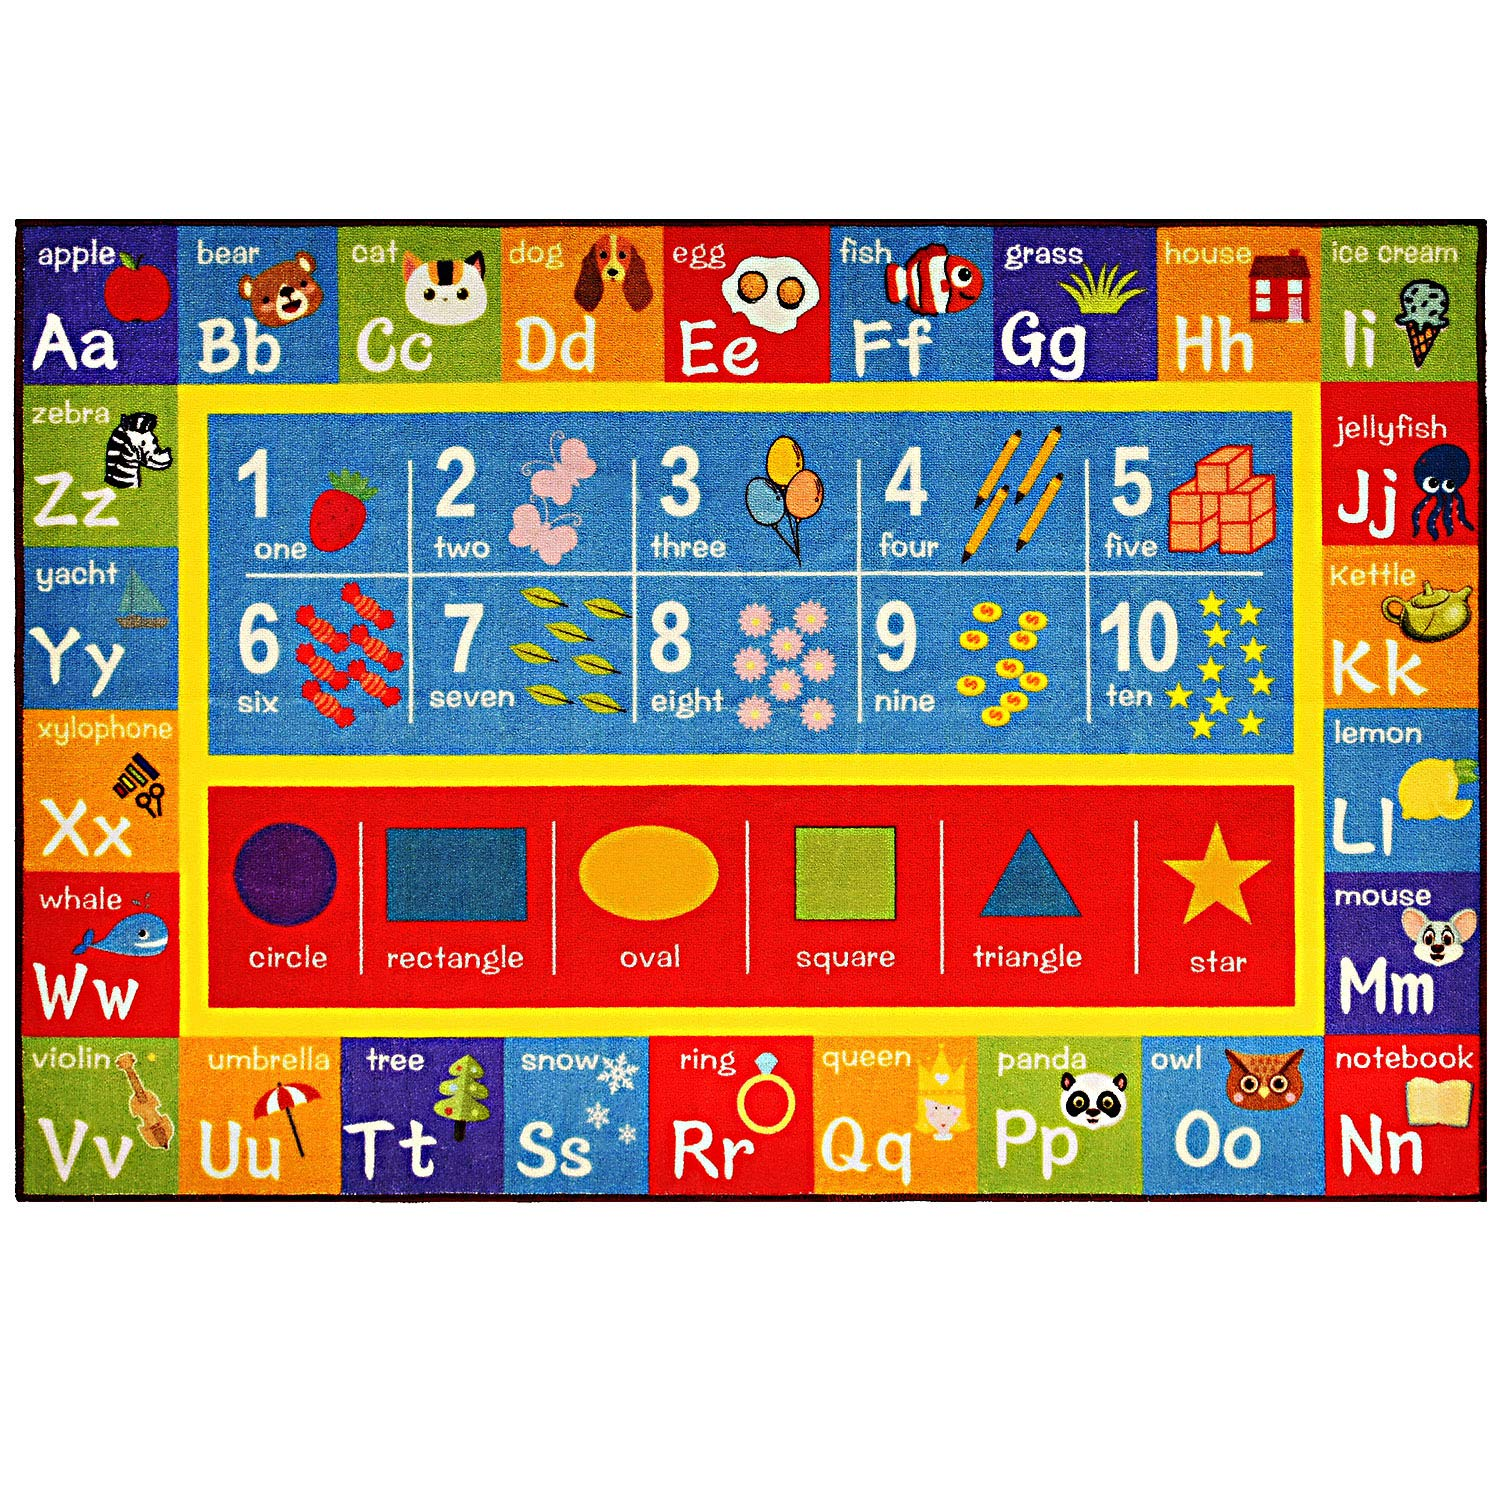 FLOWood kids Carpet Children Learning Rug with ABC,Numbers and Shapes,Educational Area Rug Carpet For Bedroom and Playroom,Safe and Fun Playtime Rug for Kids(40